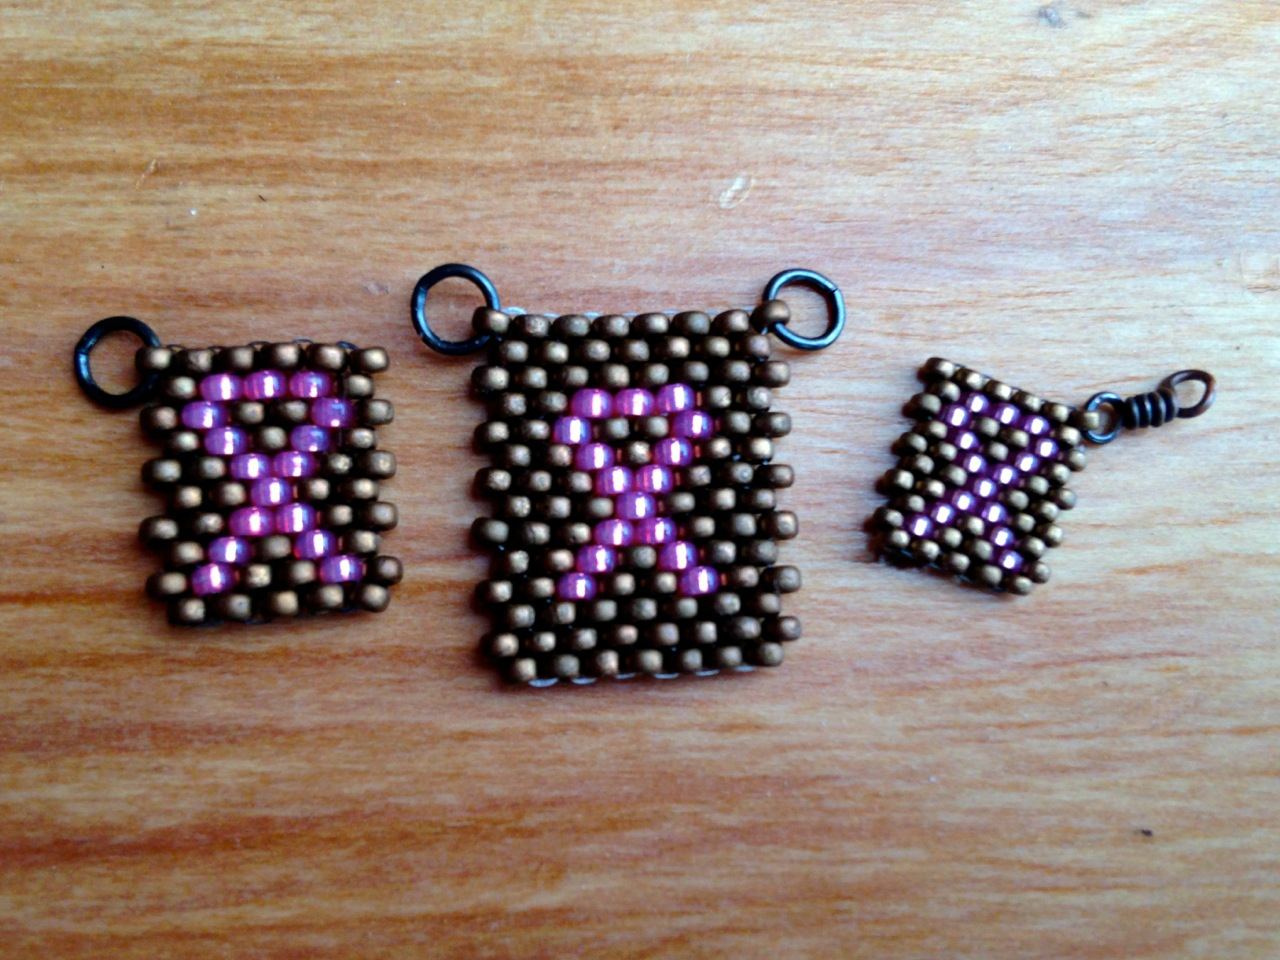 Breast Cancer Awareness peyote stitch charm and tags